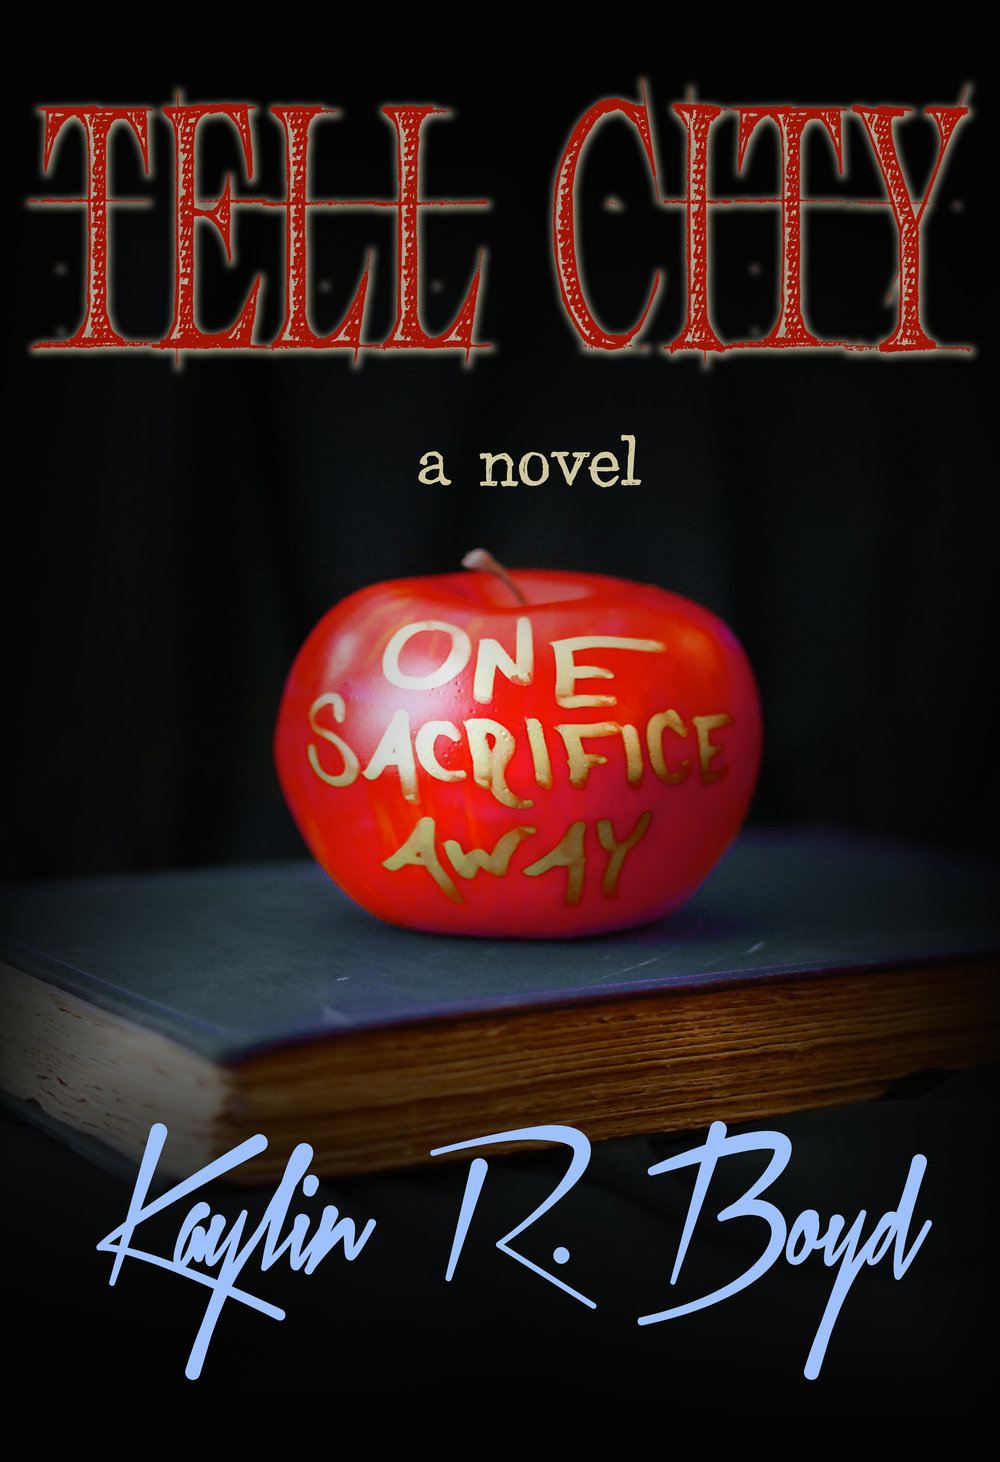 The first ever  Tell City  cover design.